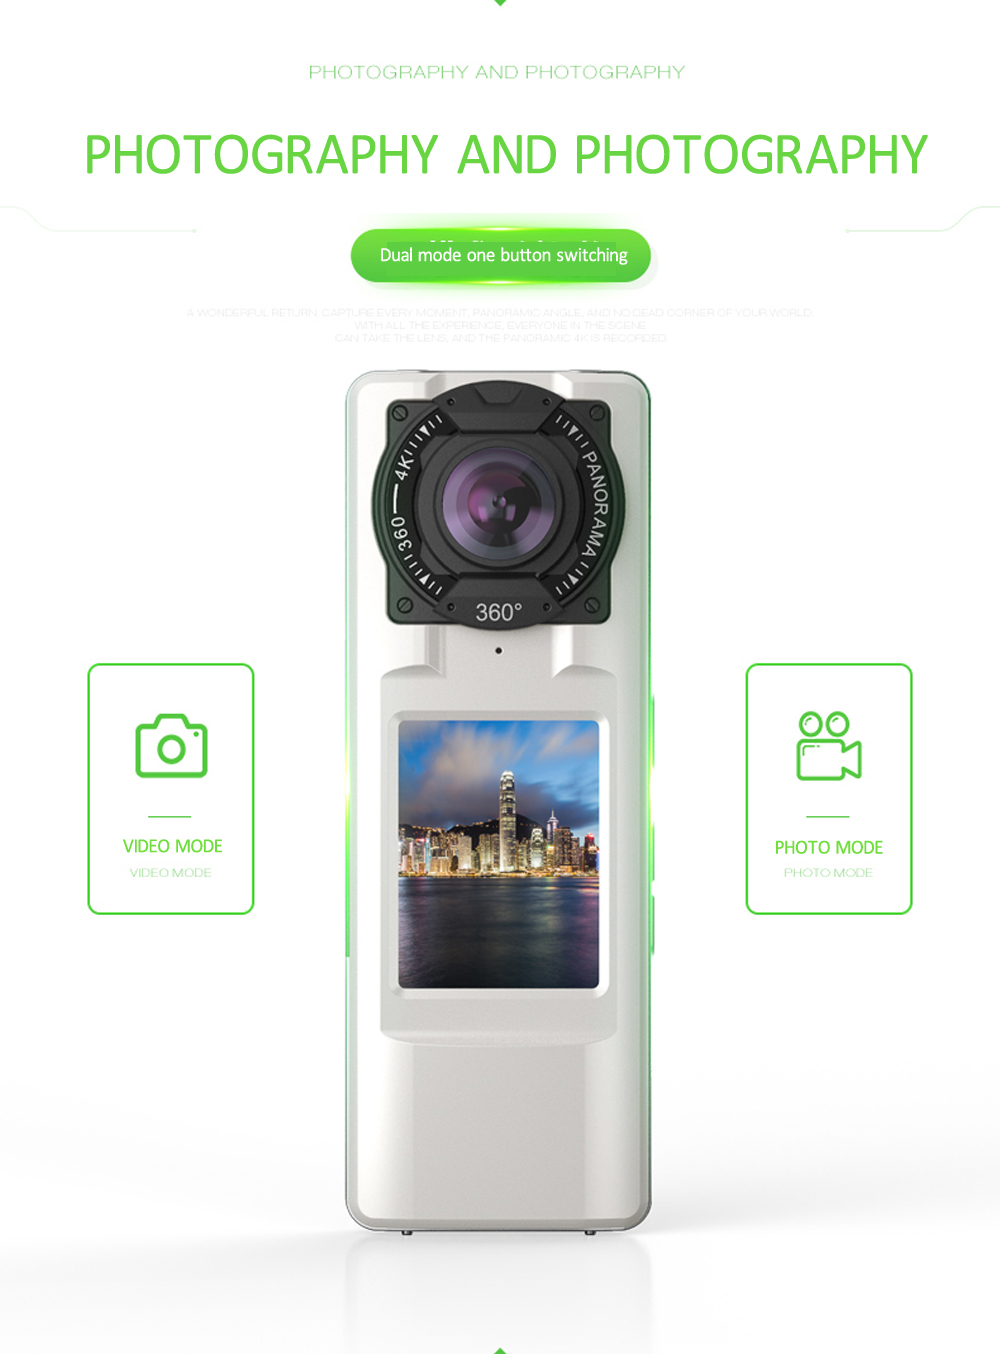 360-degree HD 4K Quality Dual Camera SC - CA08 Panoramic Motion Camera